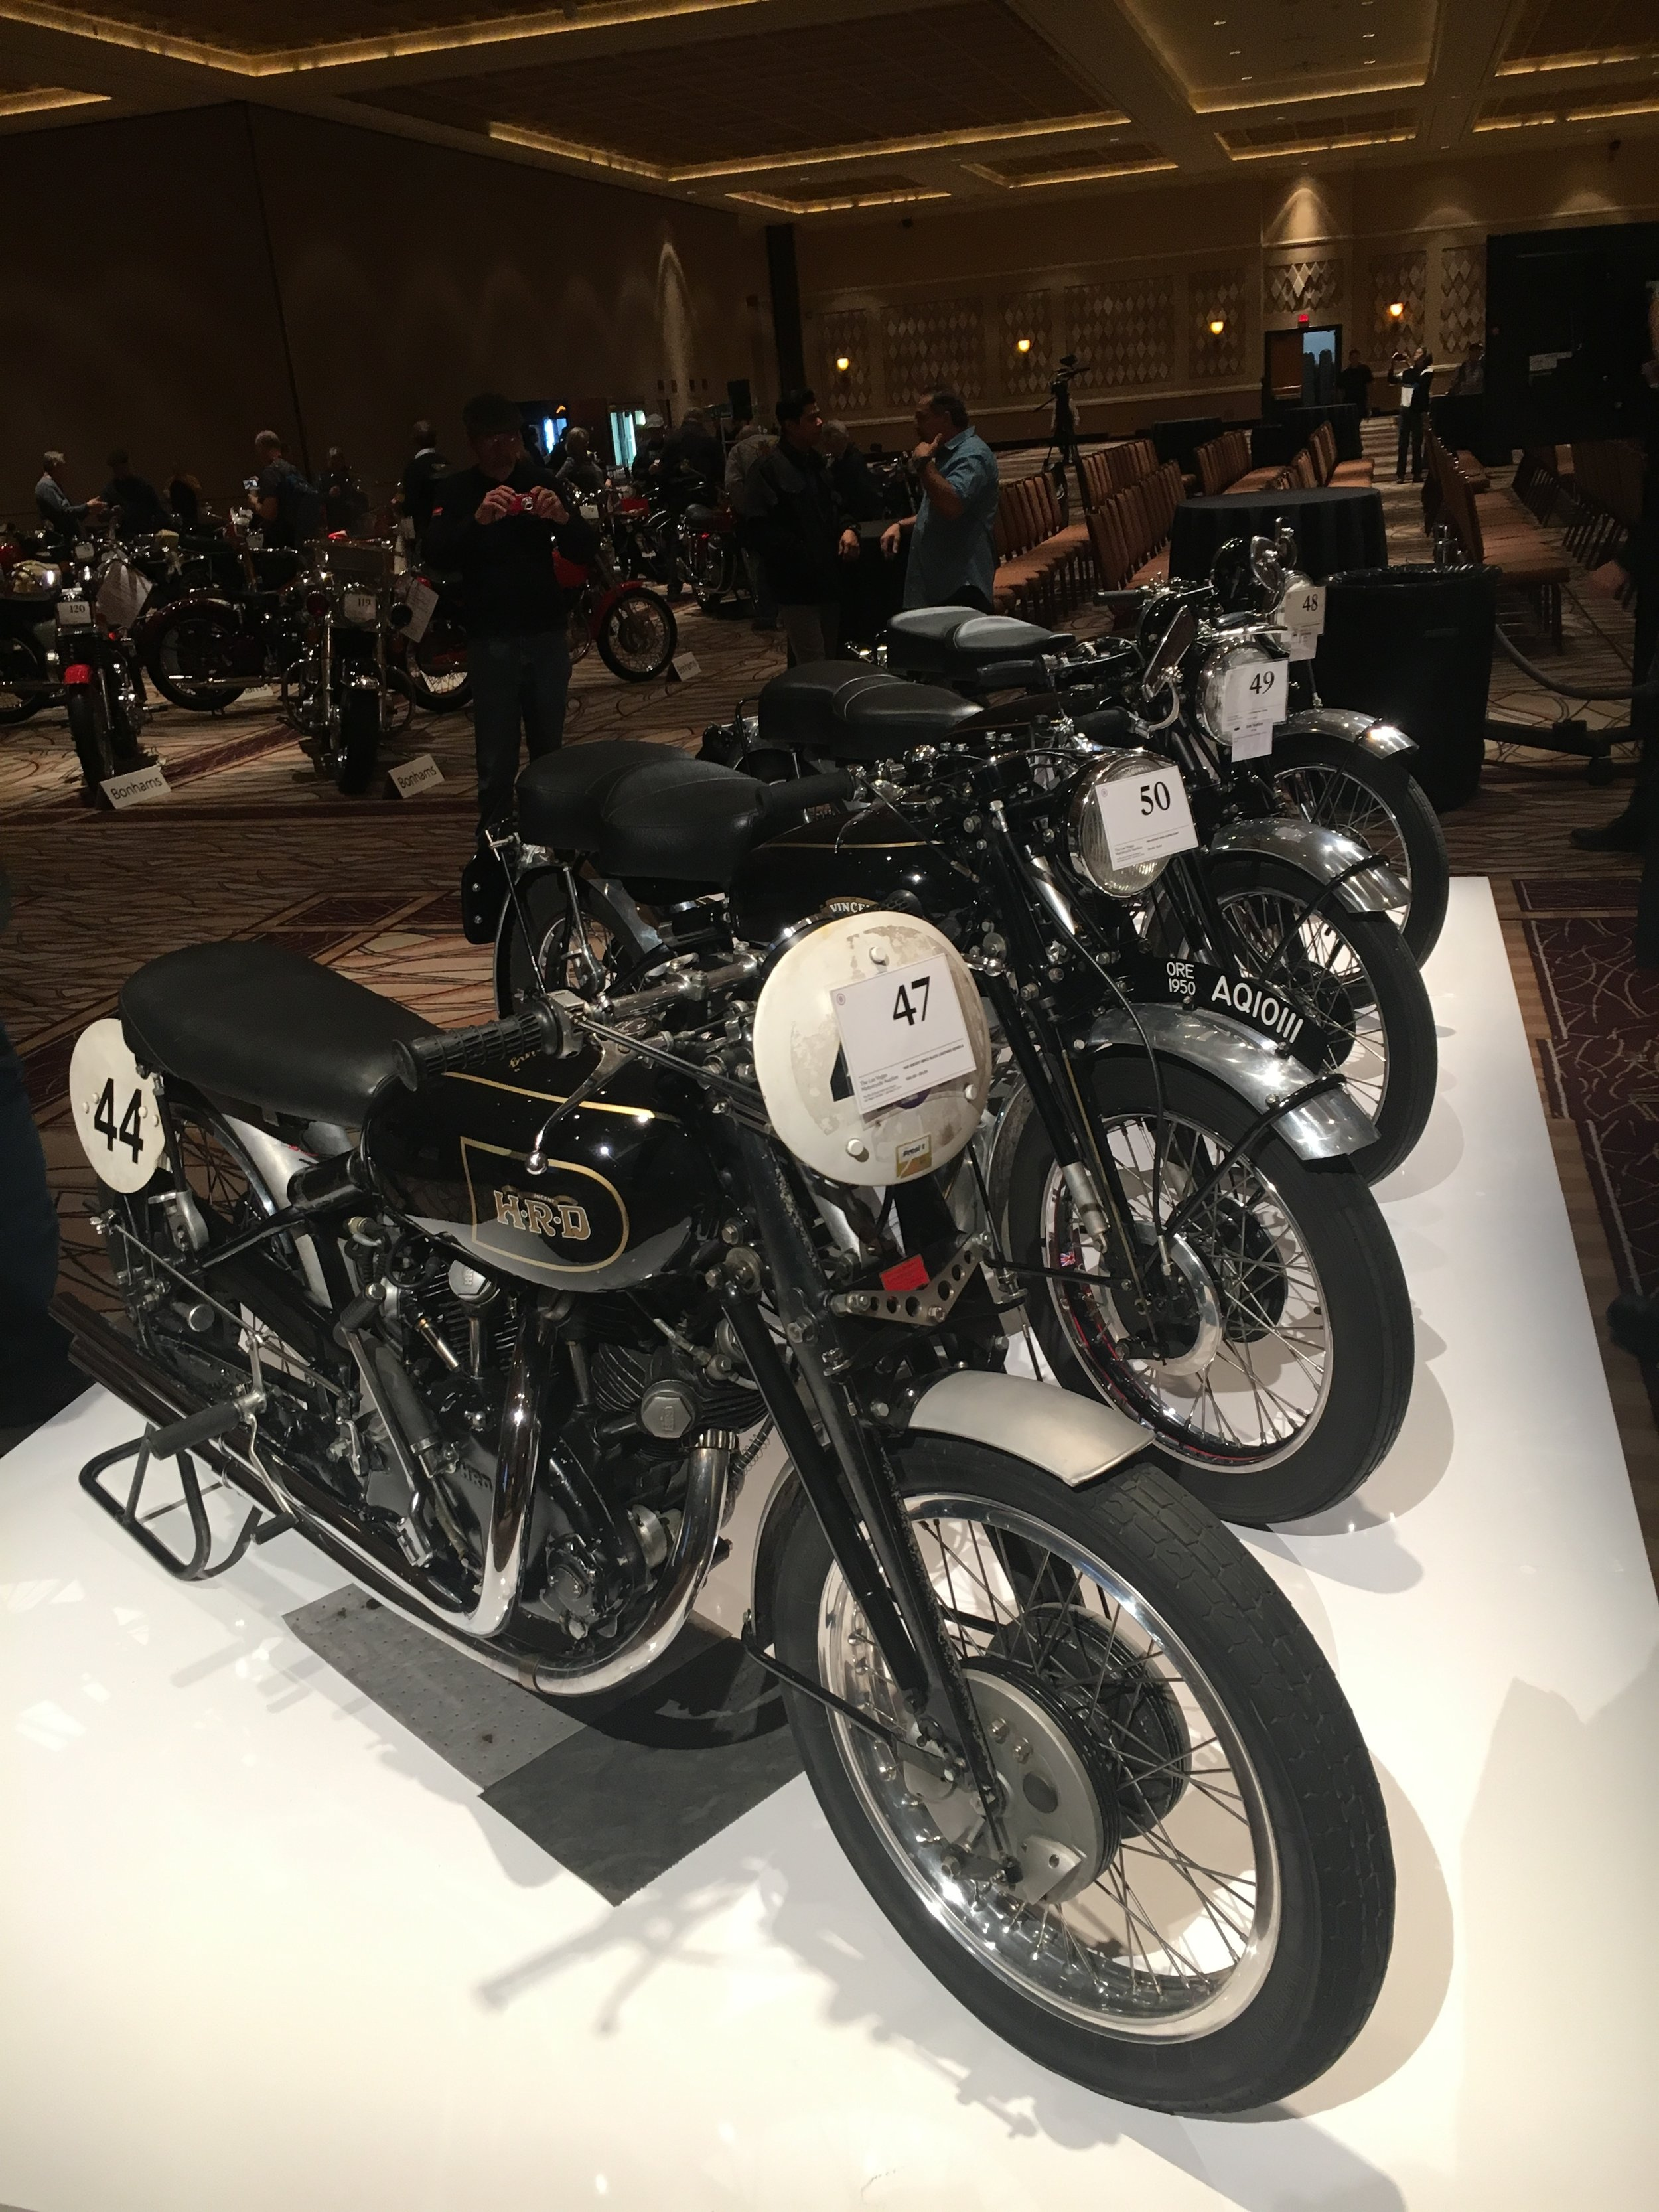 Holy grail of motorcycles the Vincent's.